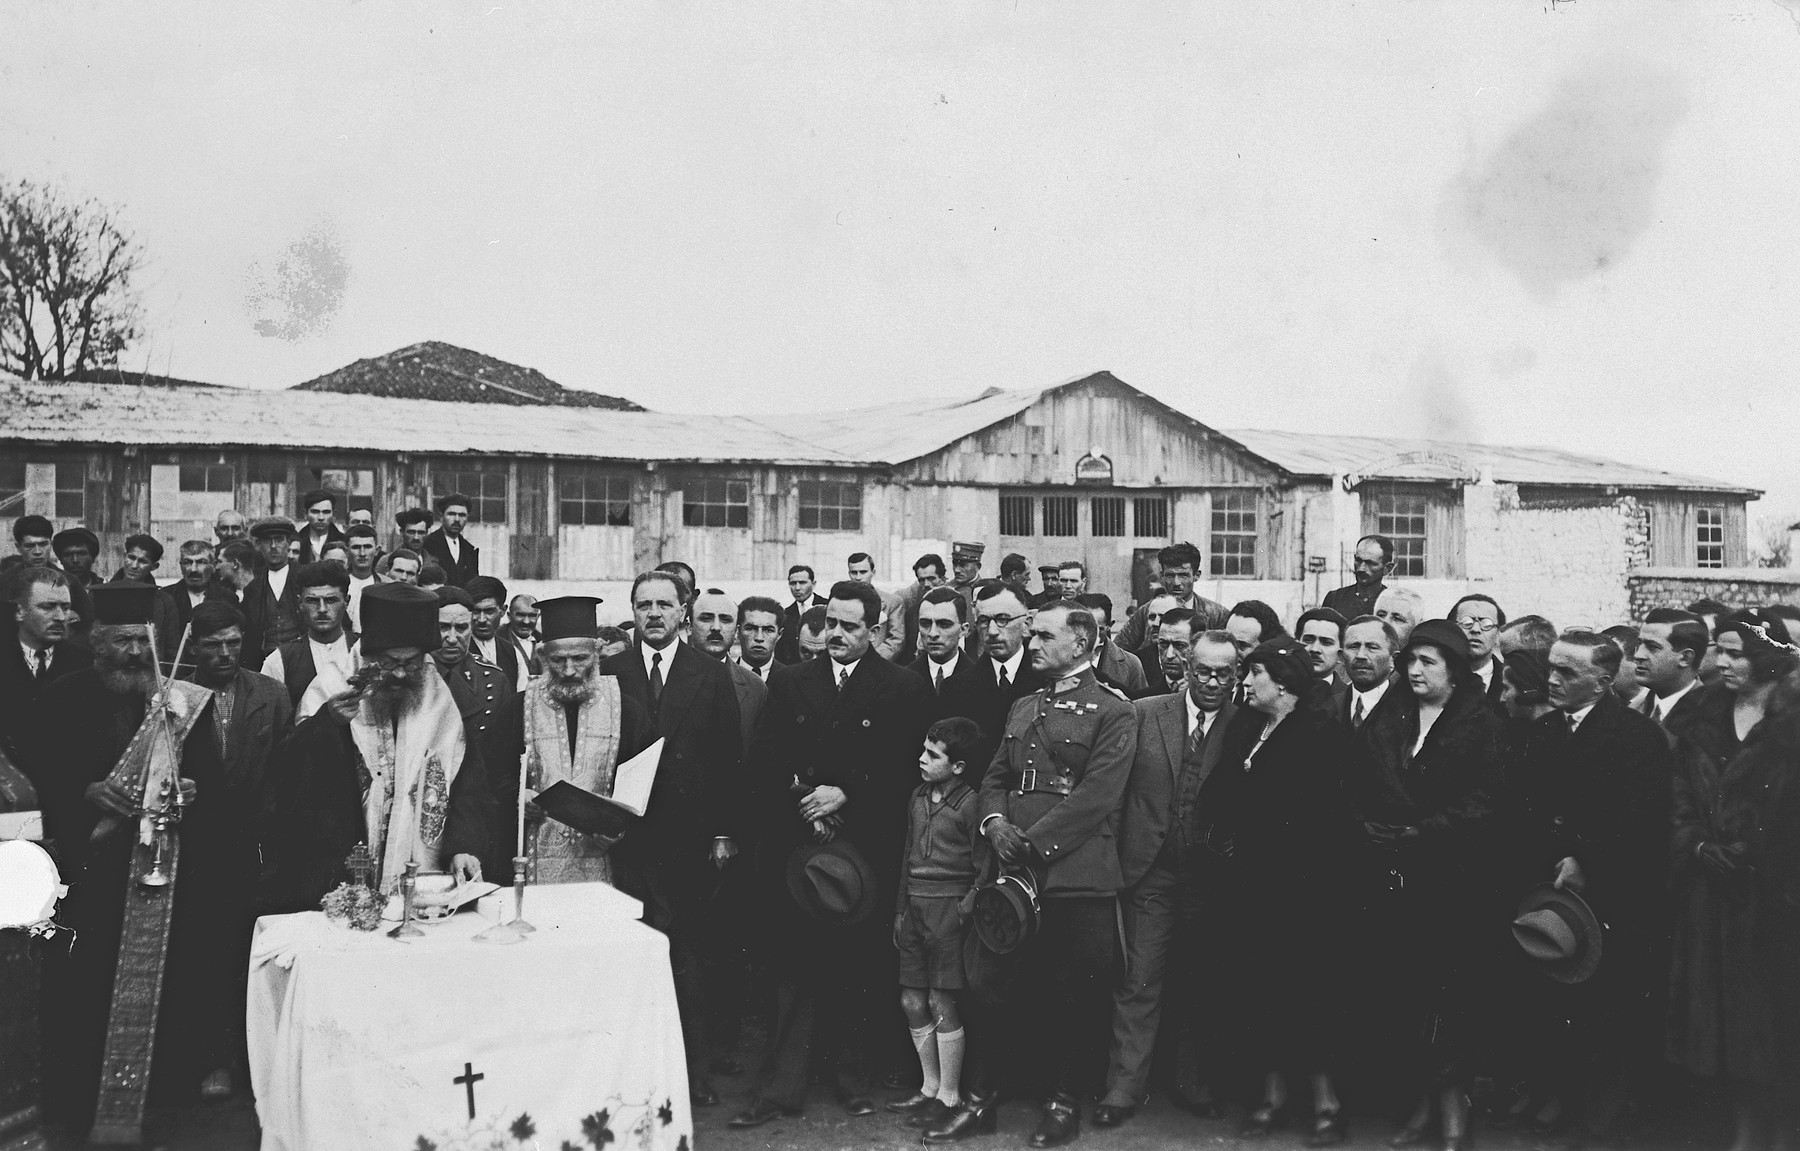 A Greek Orthodox priest presides over the groundbreaking ceremony for the annex of the National Bank of Greece in Ioannina.